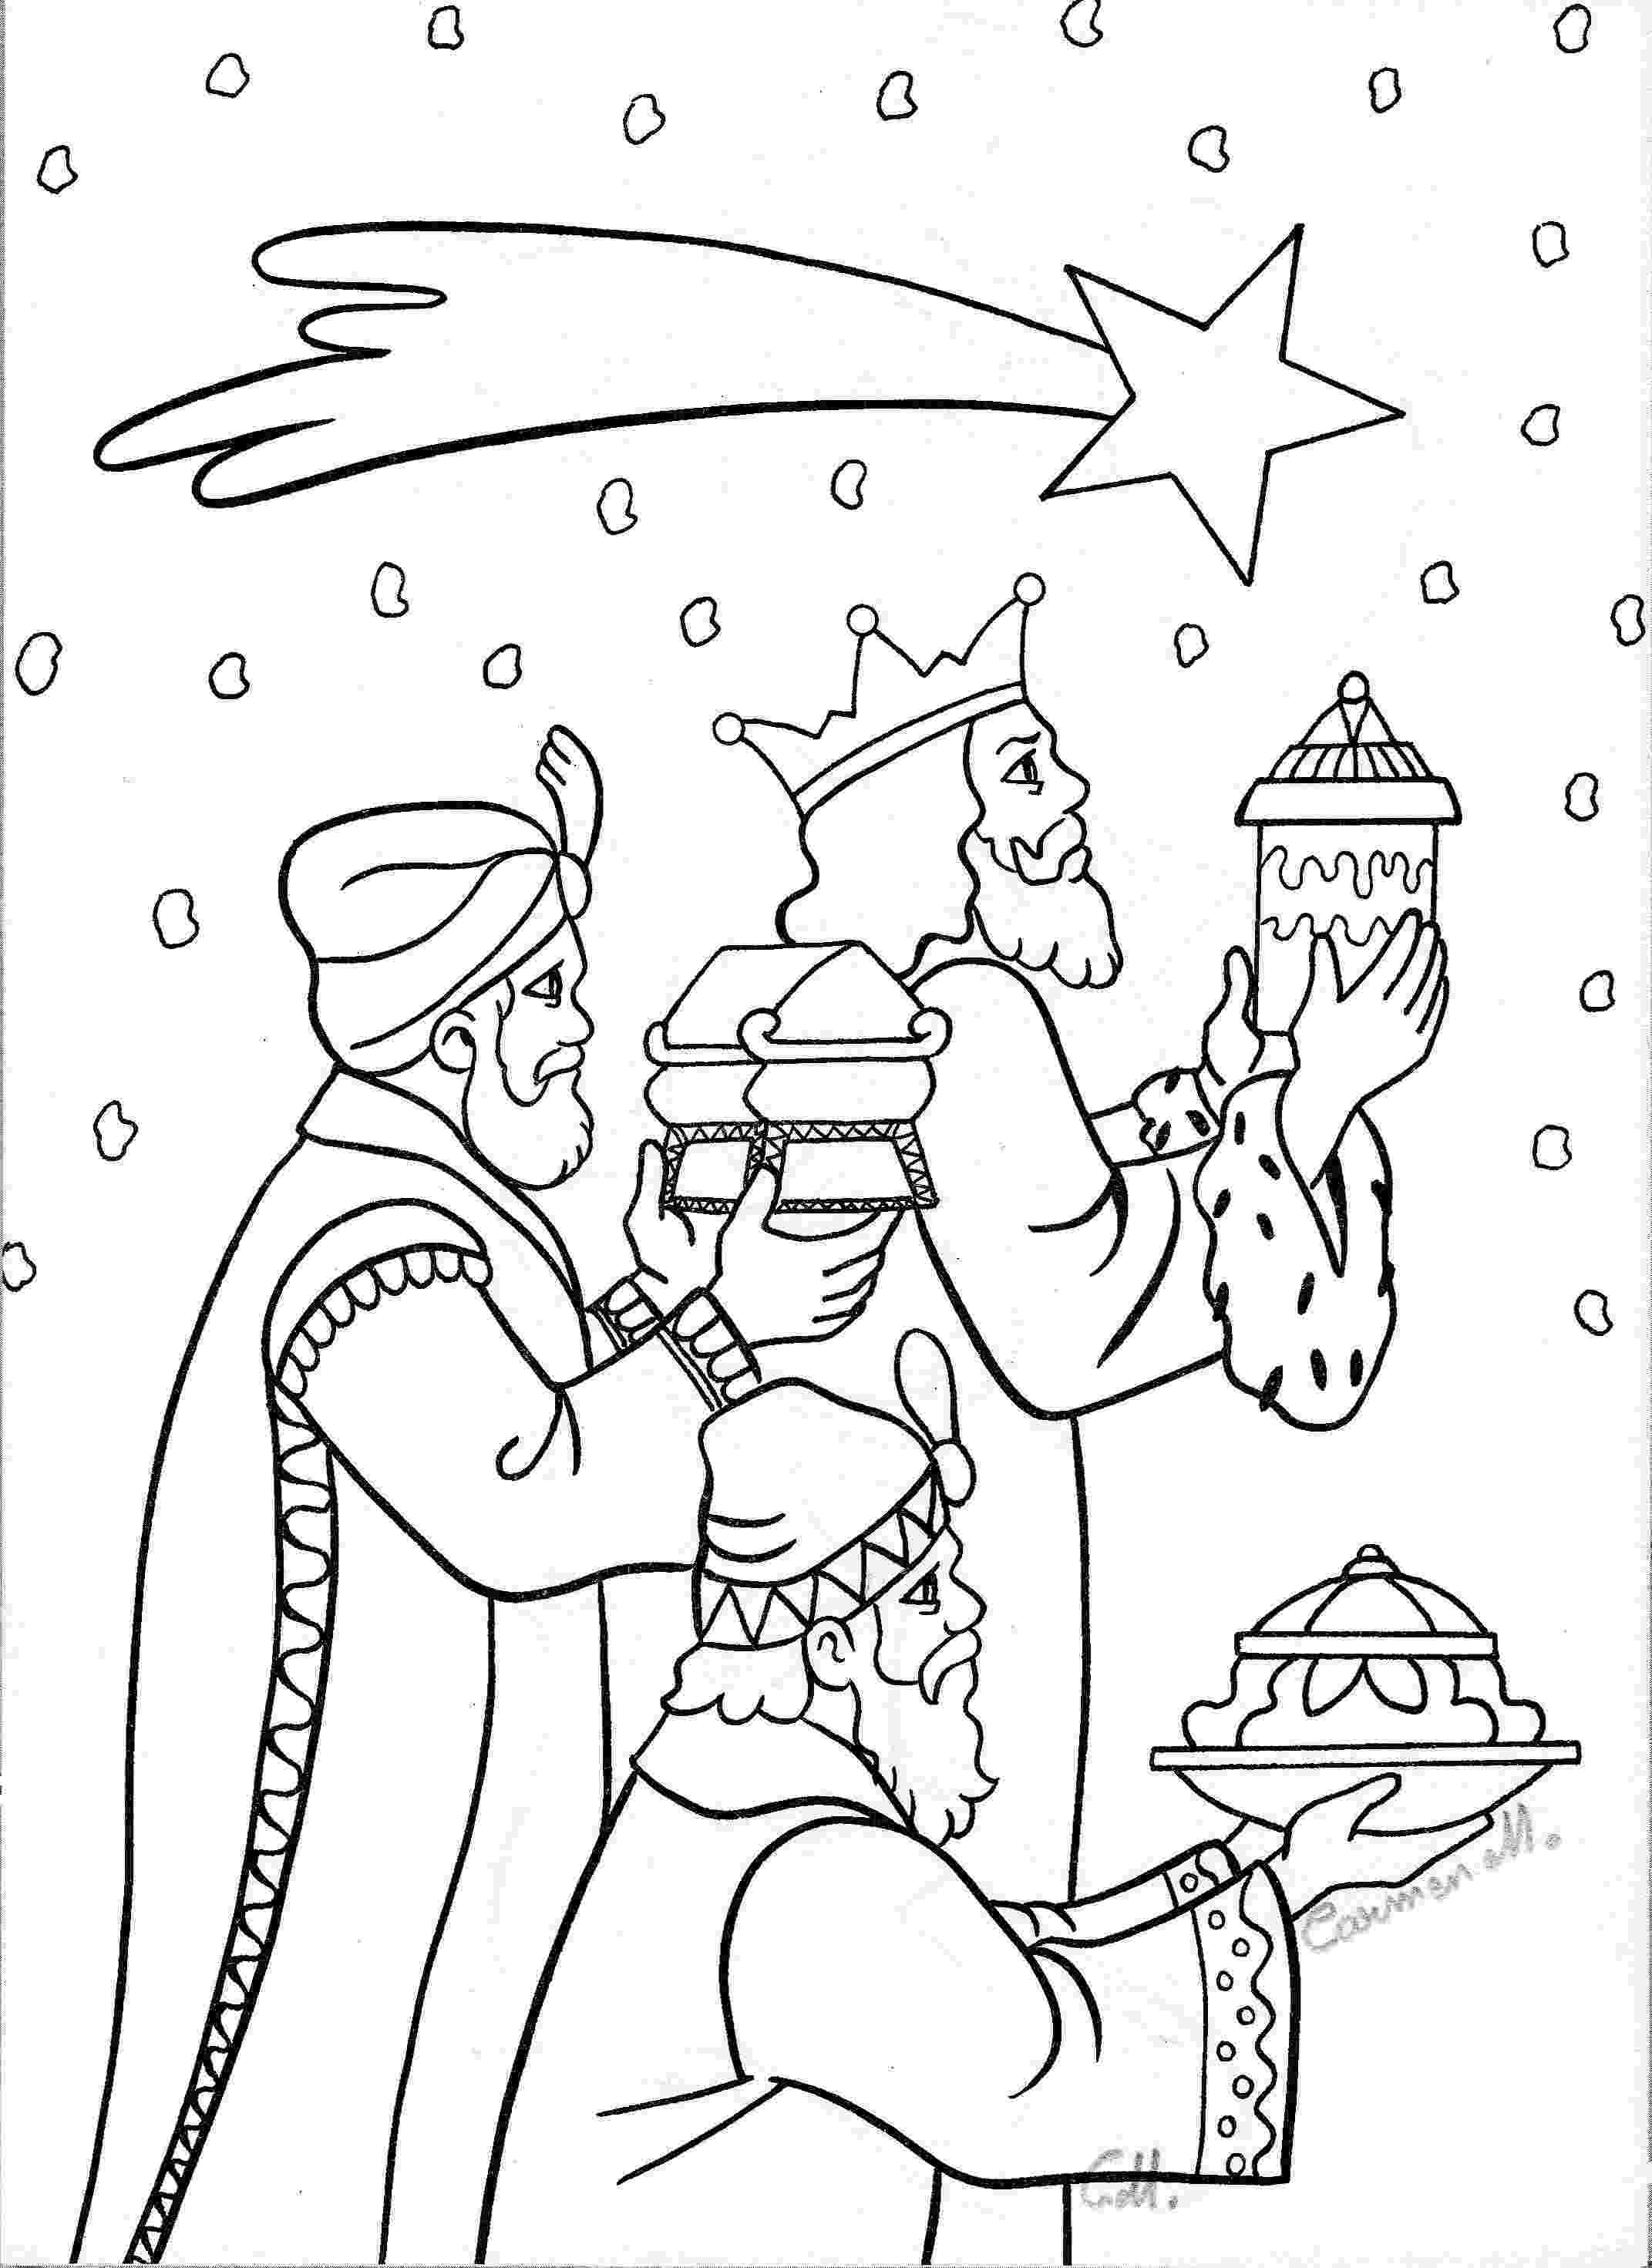 3 wise men coloring the three wise men charukriti coloring 3 men wise